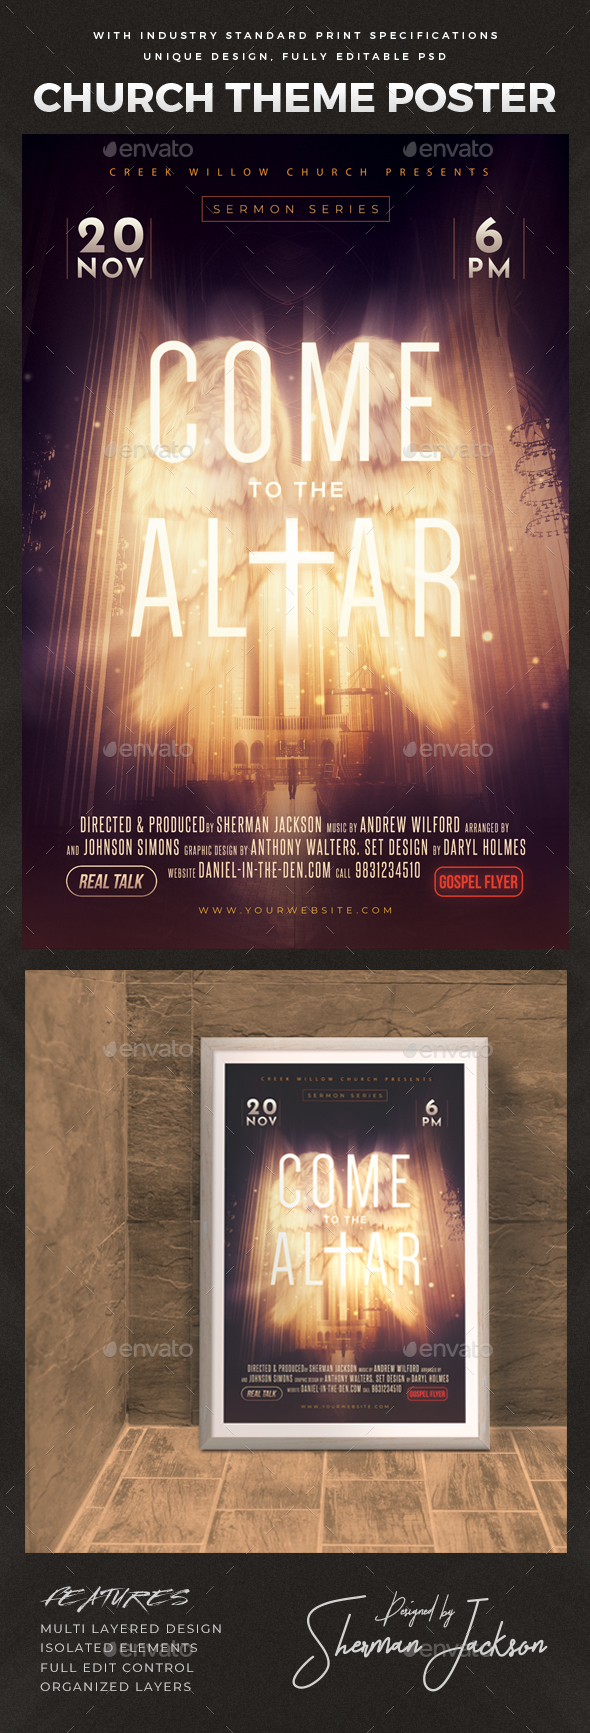 Church Themed Event Poster - The Altar - Church Flyers